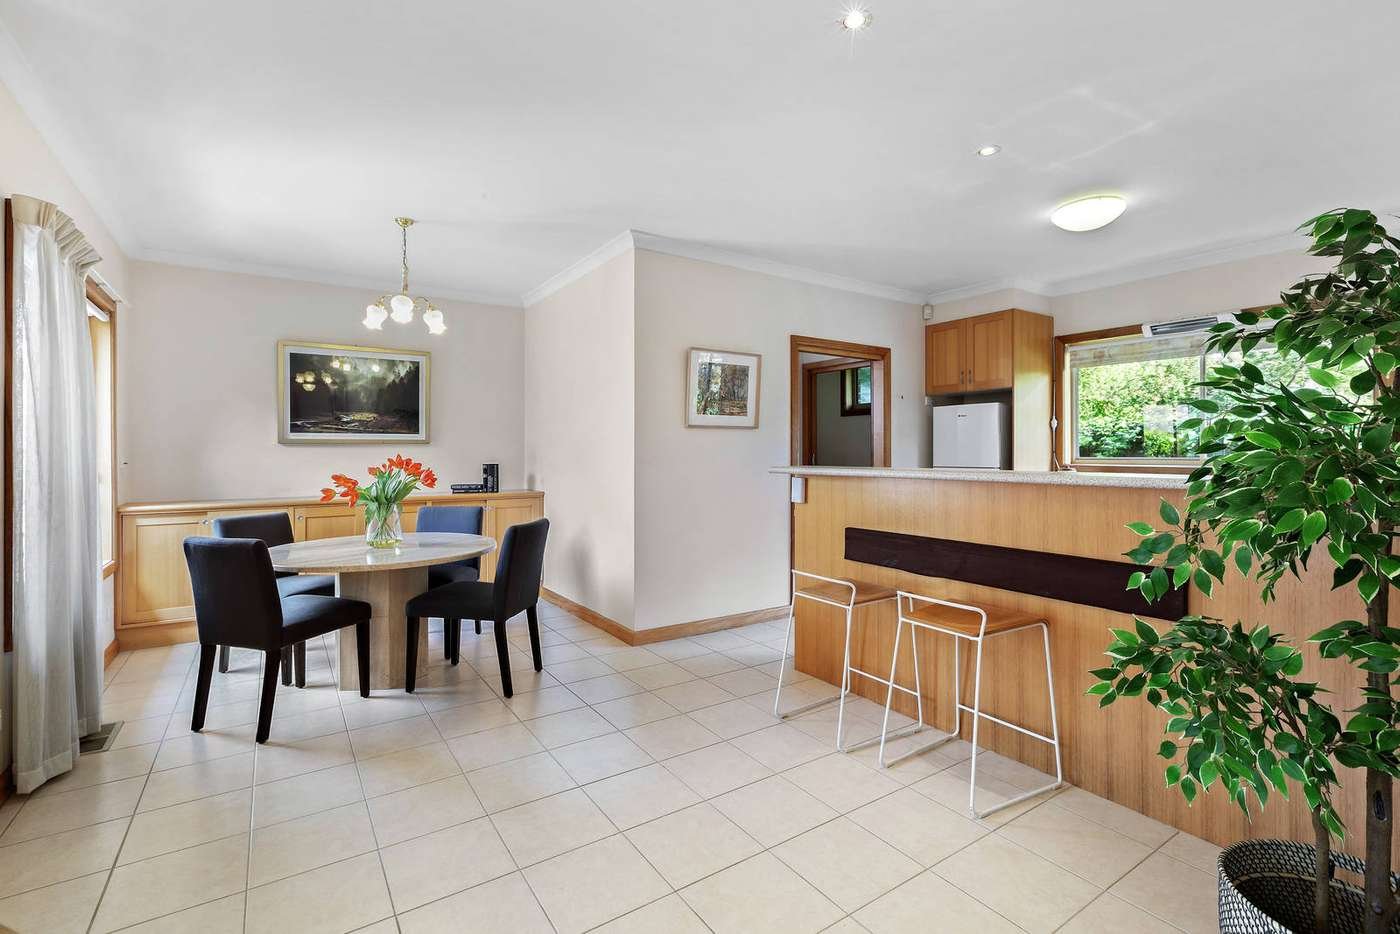 Fifth view of Homely house listing, 2/18 Roseberry Grove, Glen Huntly VIC 3163